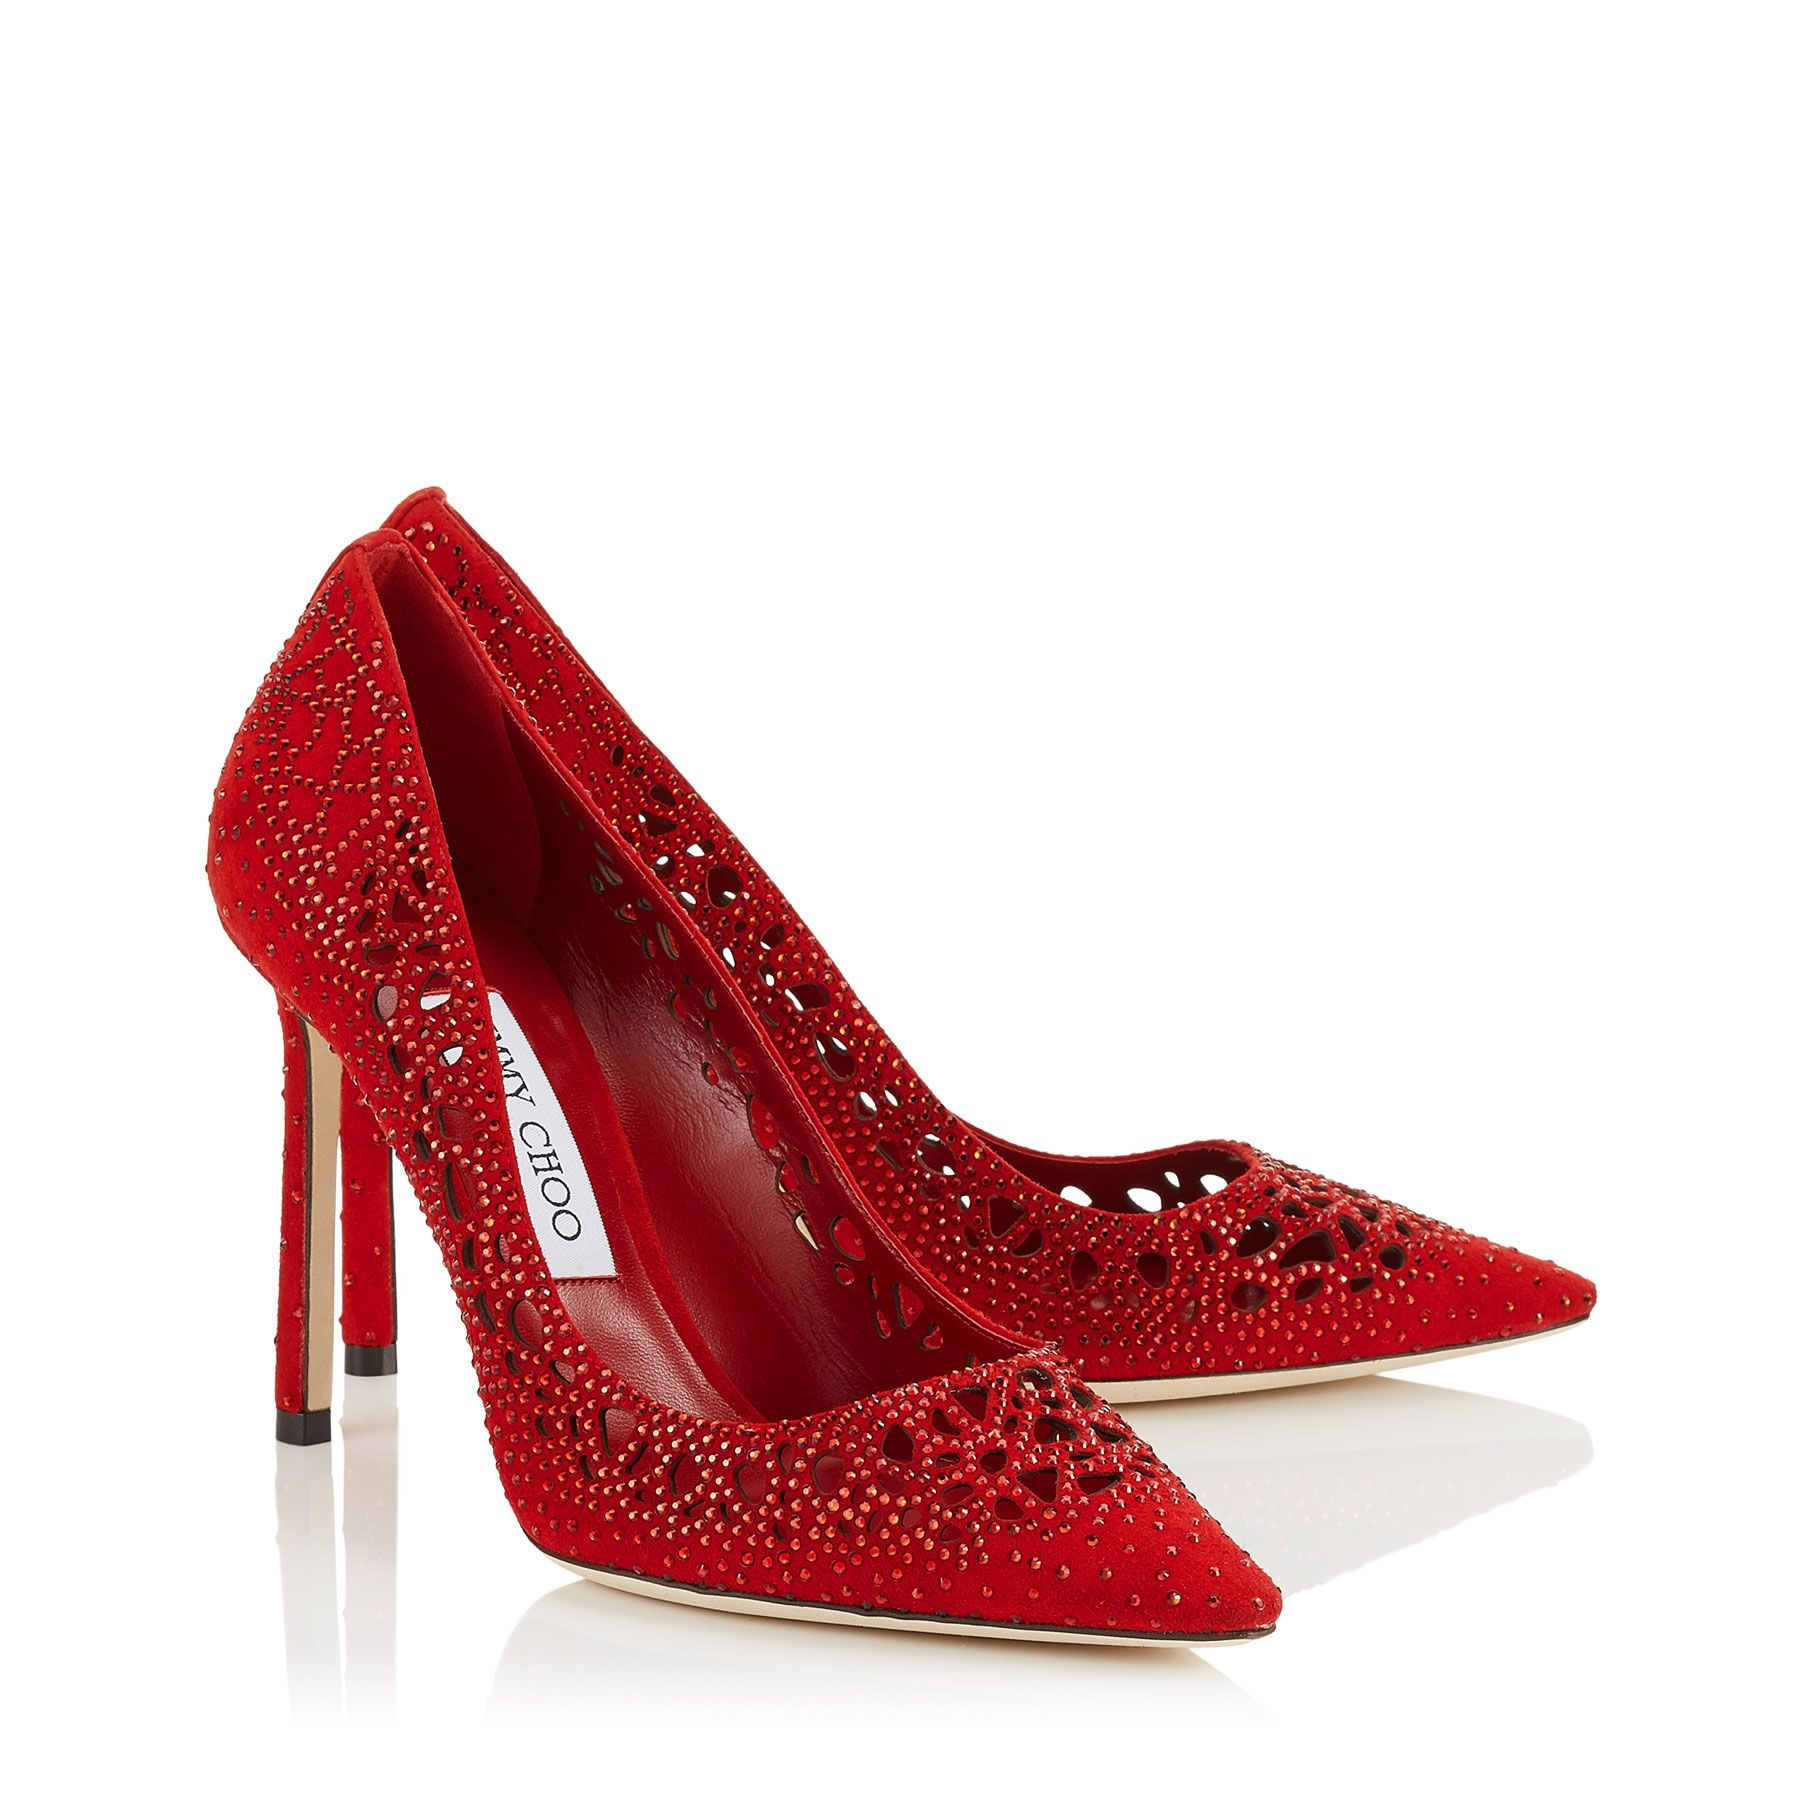 259ec09cef3 Jimmy Choo ROMY 100 Red Perforated Suede with Crystal Hotfix ...